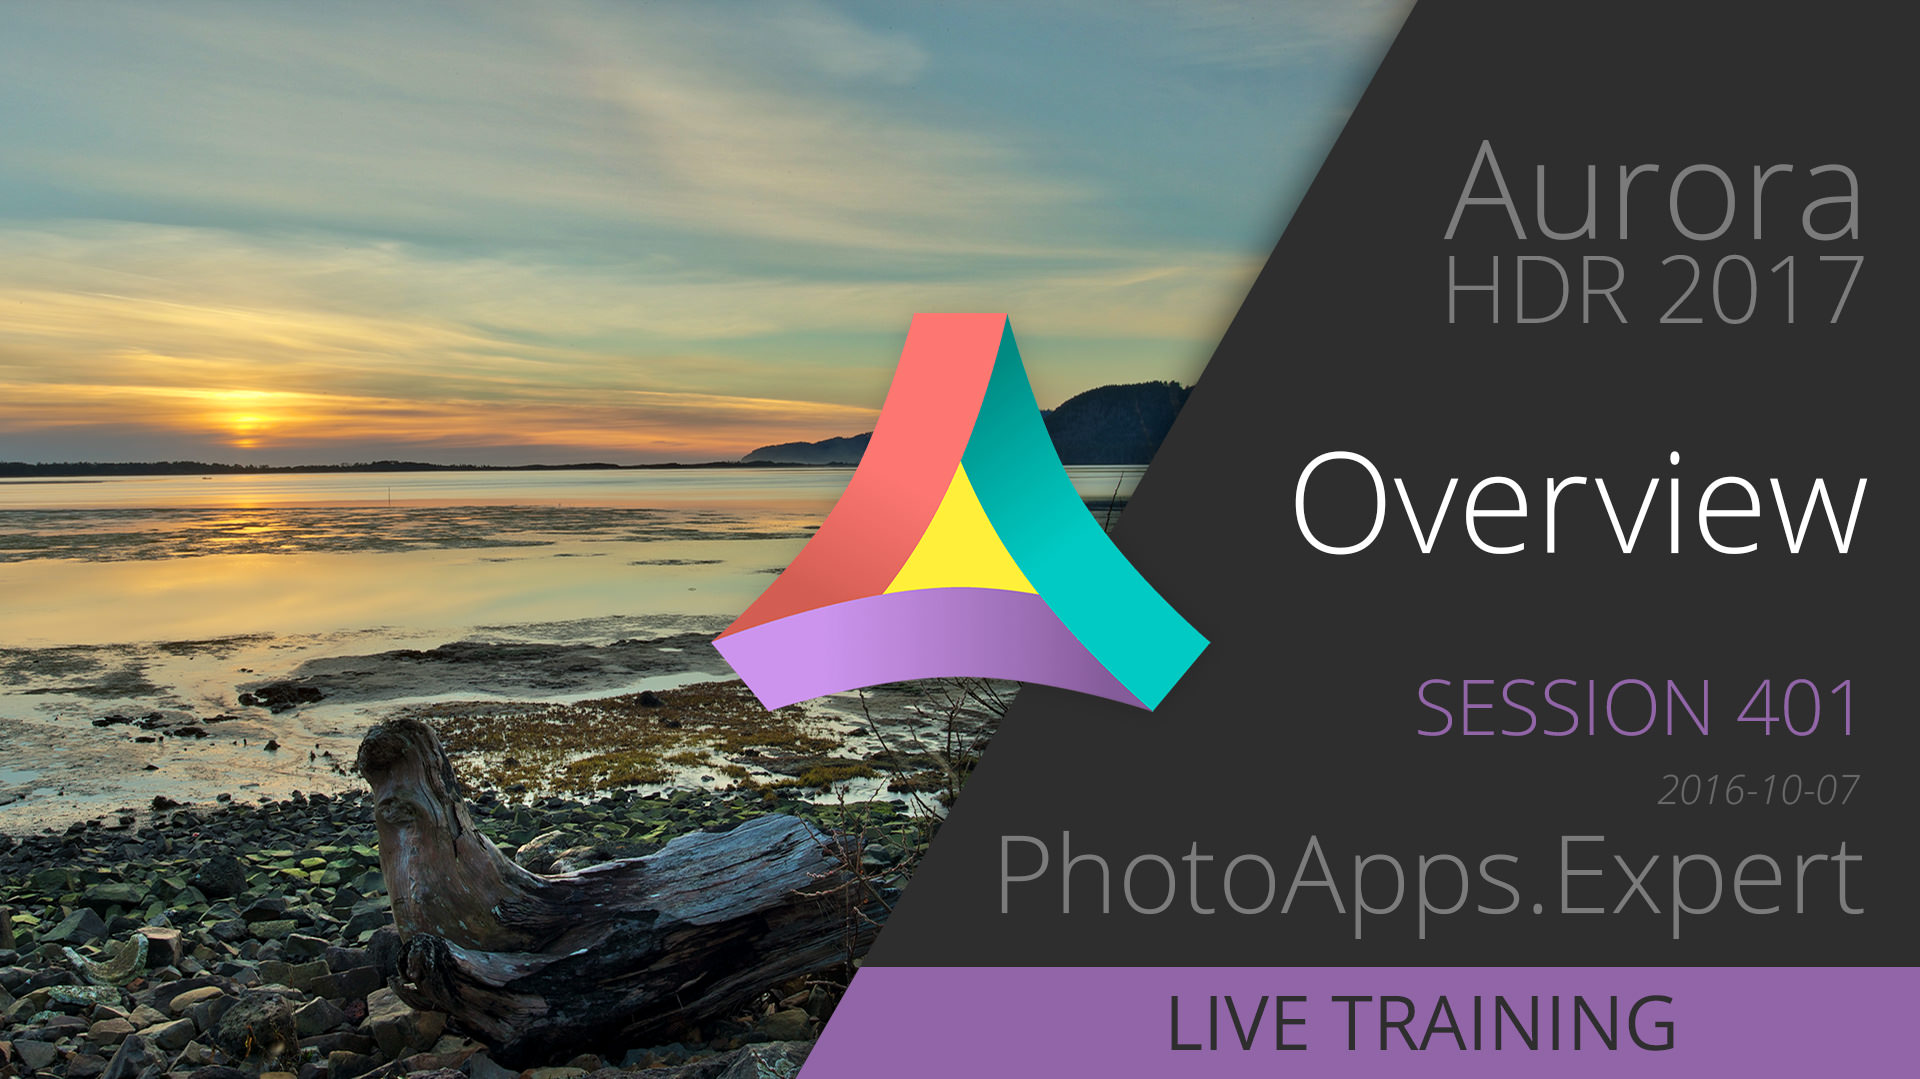 Aurora HDR 2017 Live Training session 401 OVERVIEW